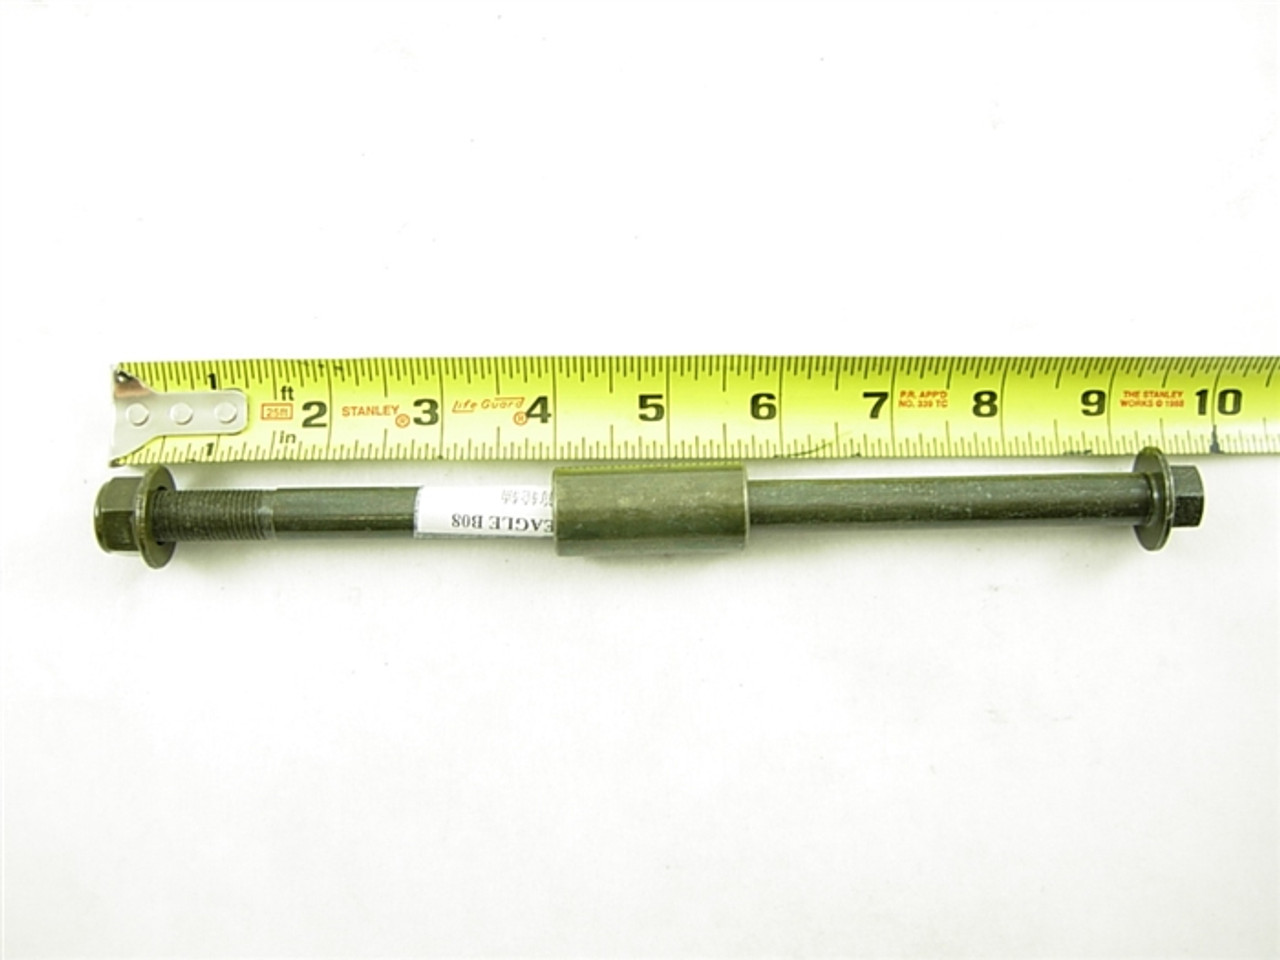 FRONT WHEEL AXLE 12708-A151-8